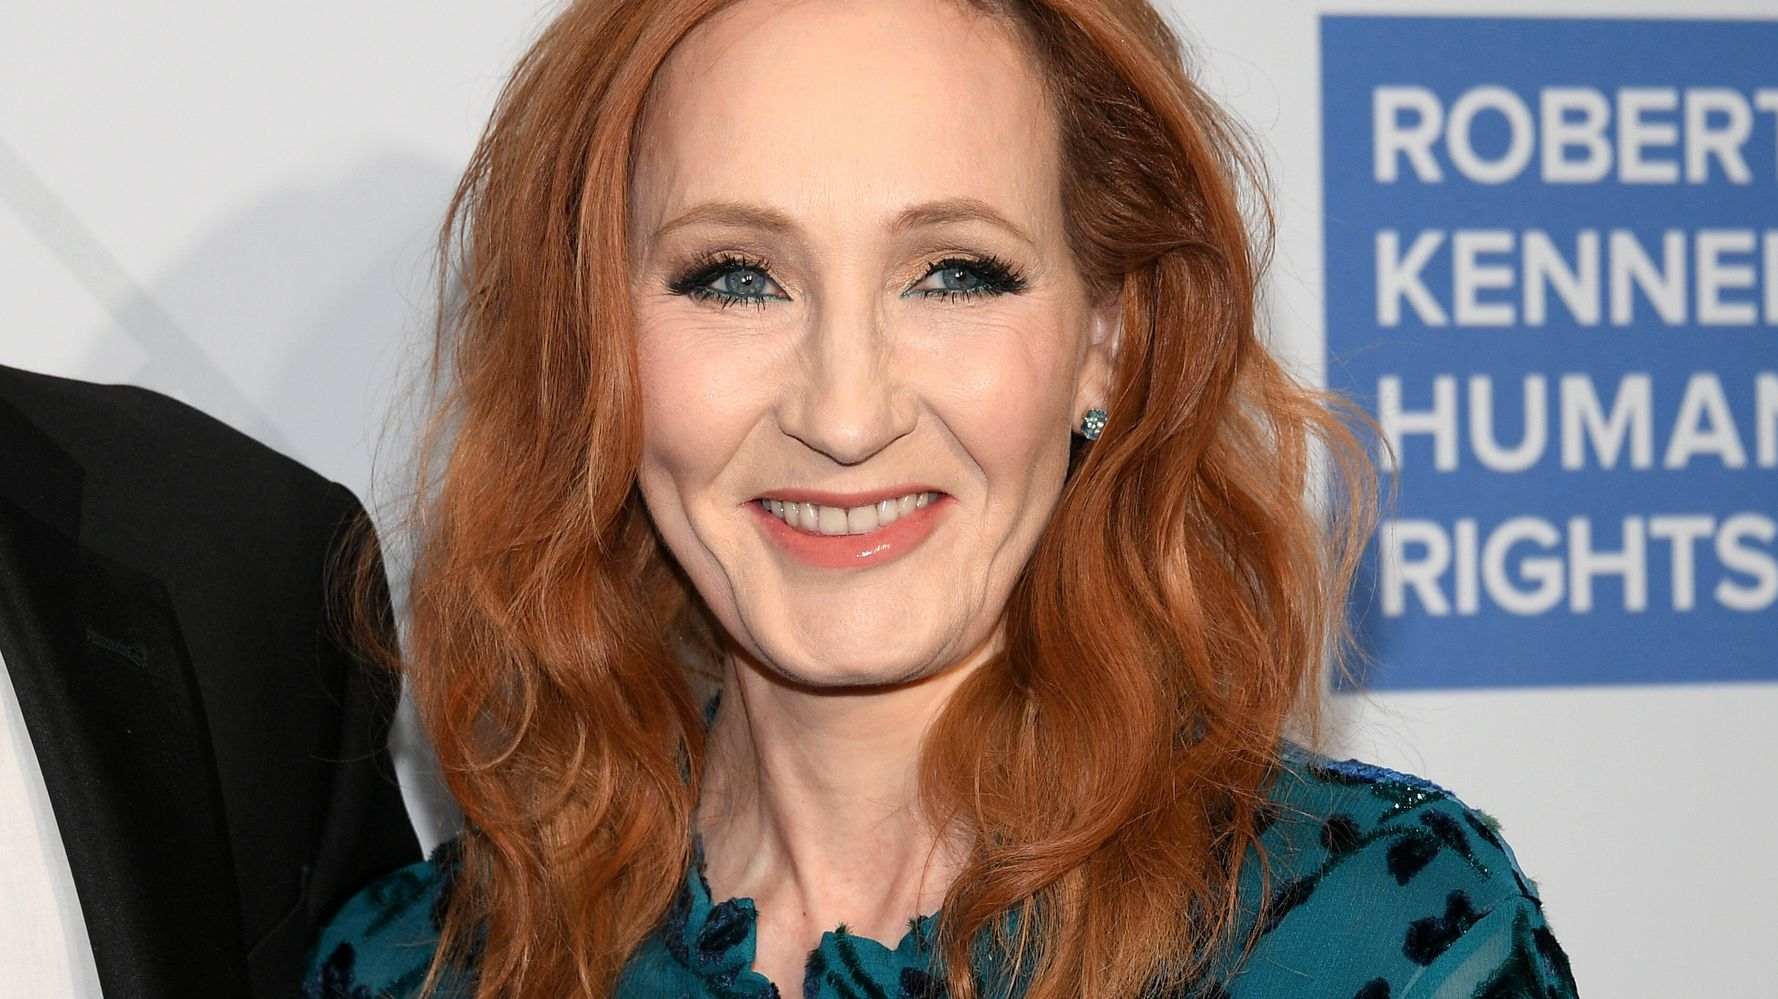 'Harry Potter' Fan Groups Take United Stand Against J.K. Rowling's Transphobic Views